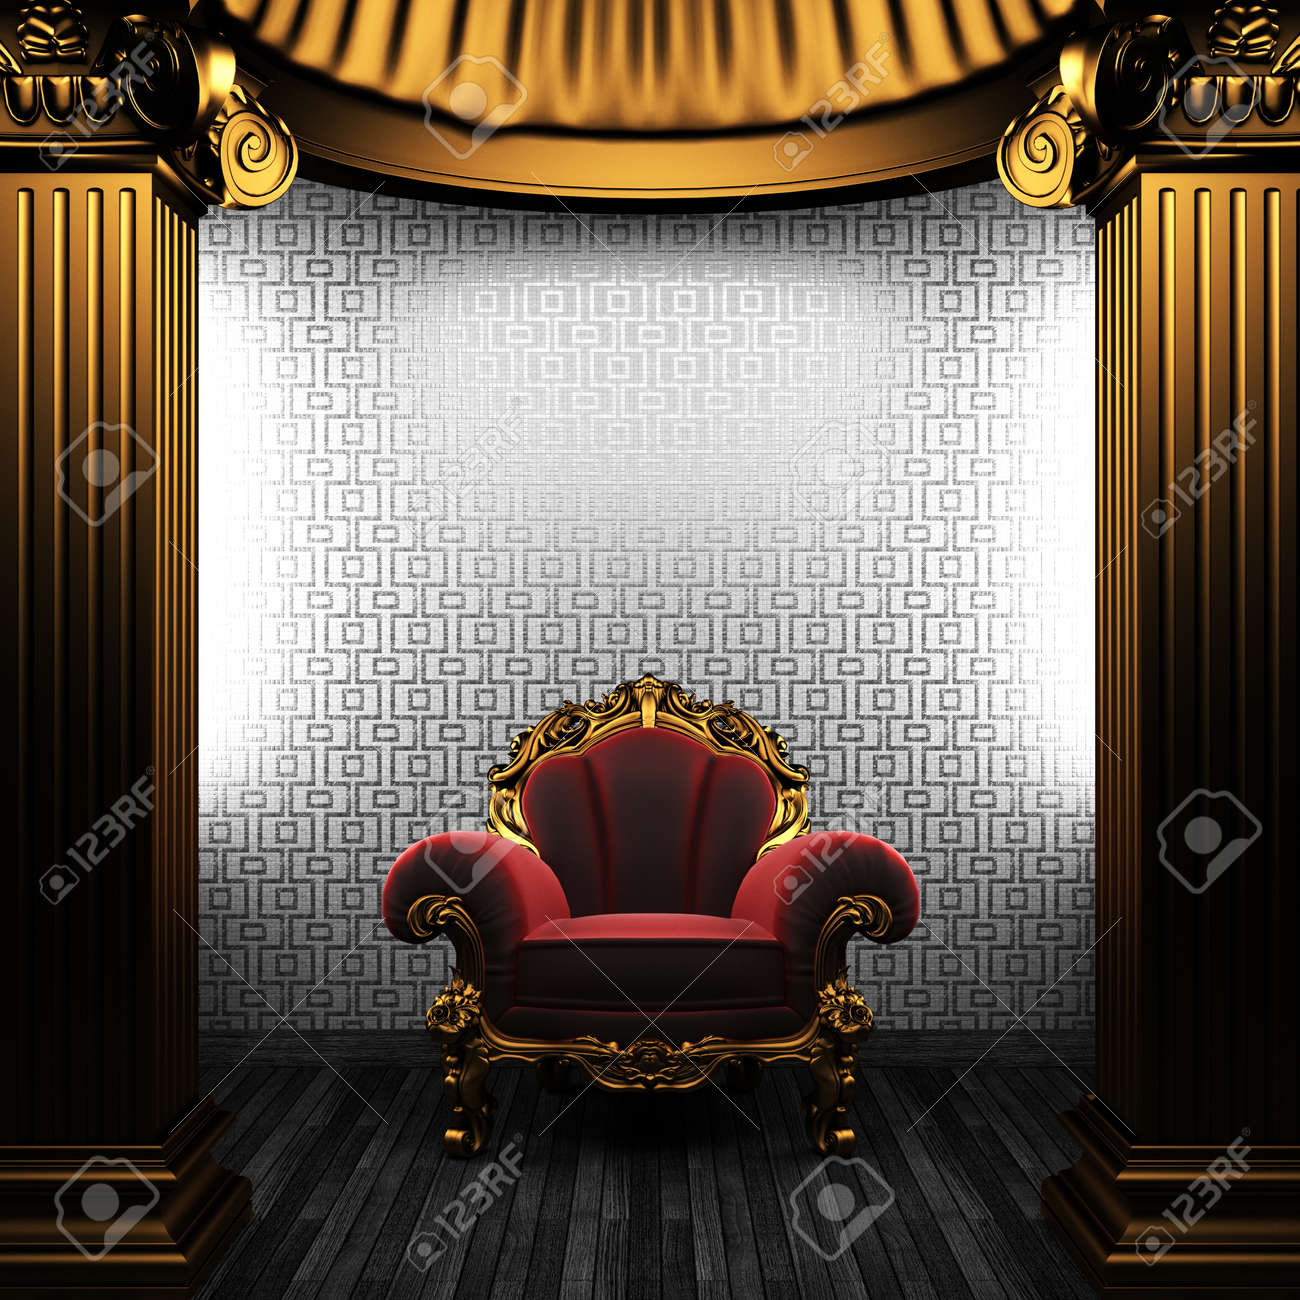 bronze columns, chair and tile wall made in 3D Stock Photo - 8503460